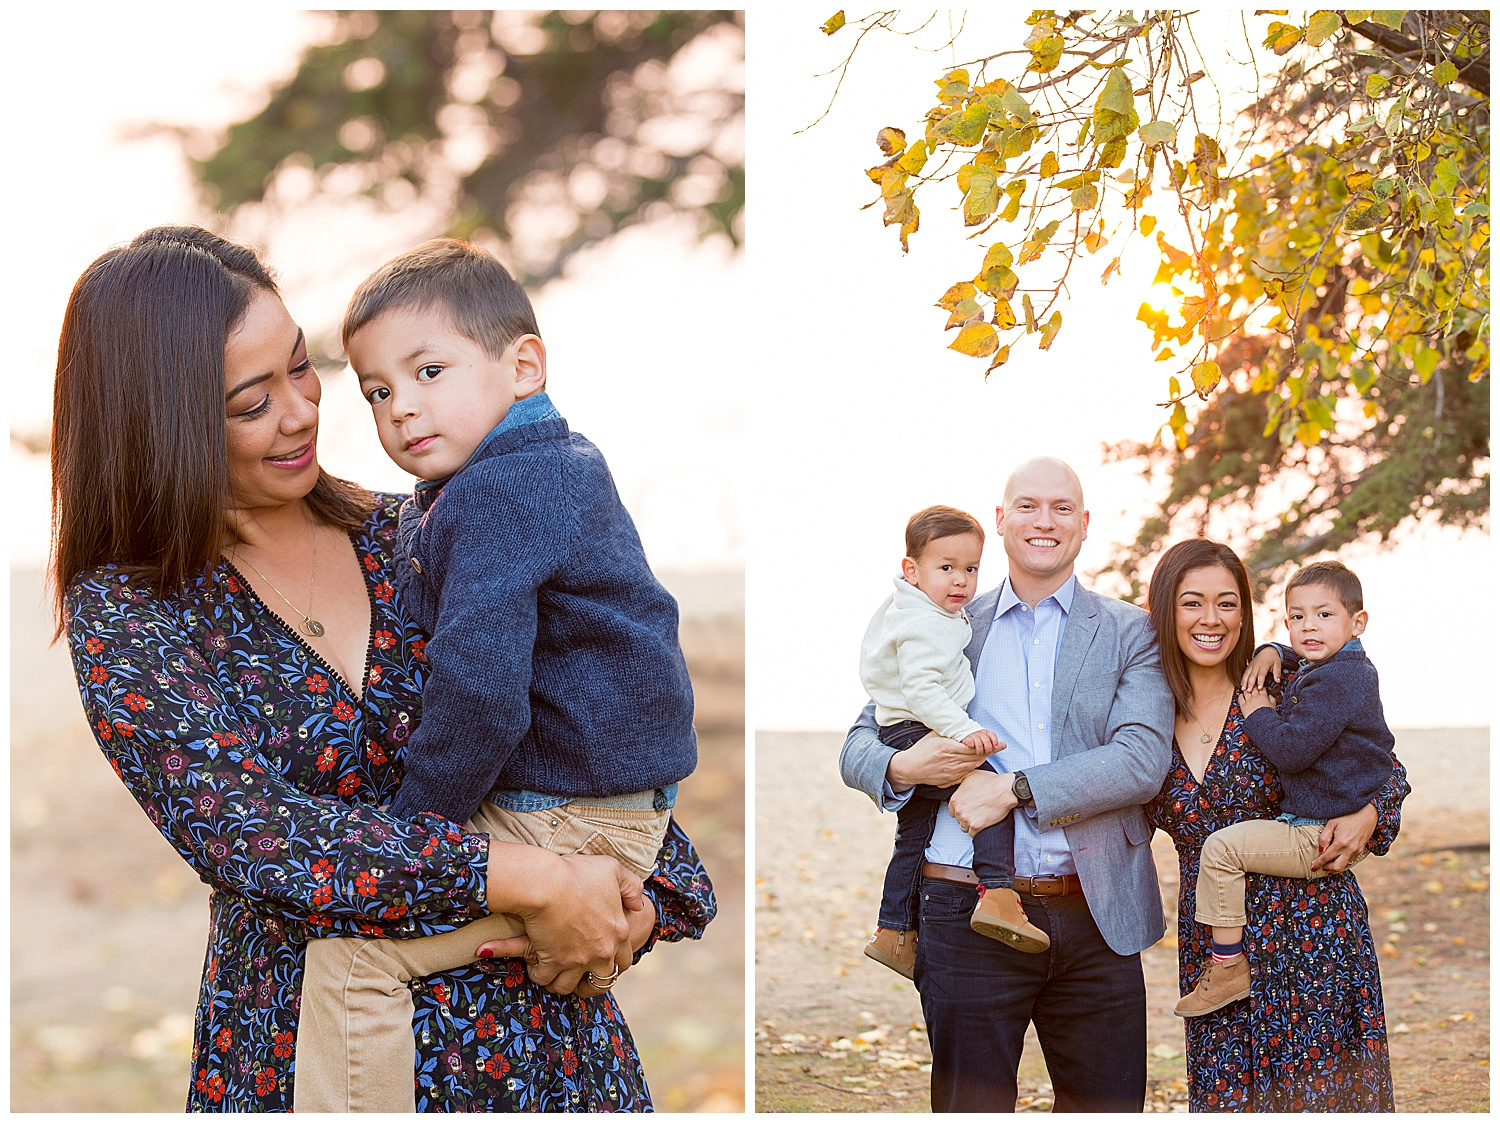 alameda.family.photographer_0001.jpg